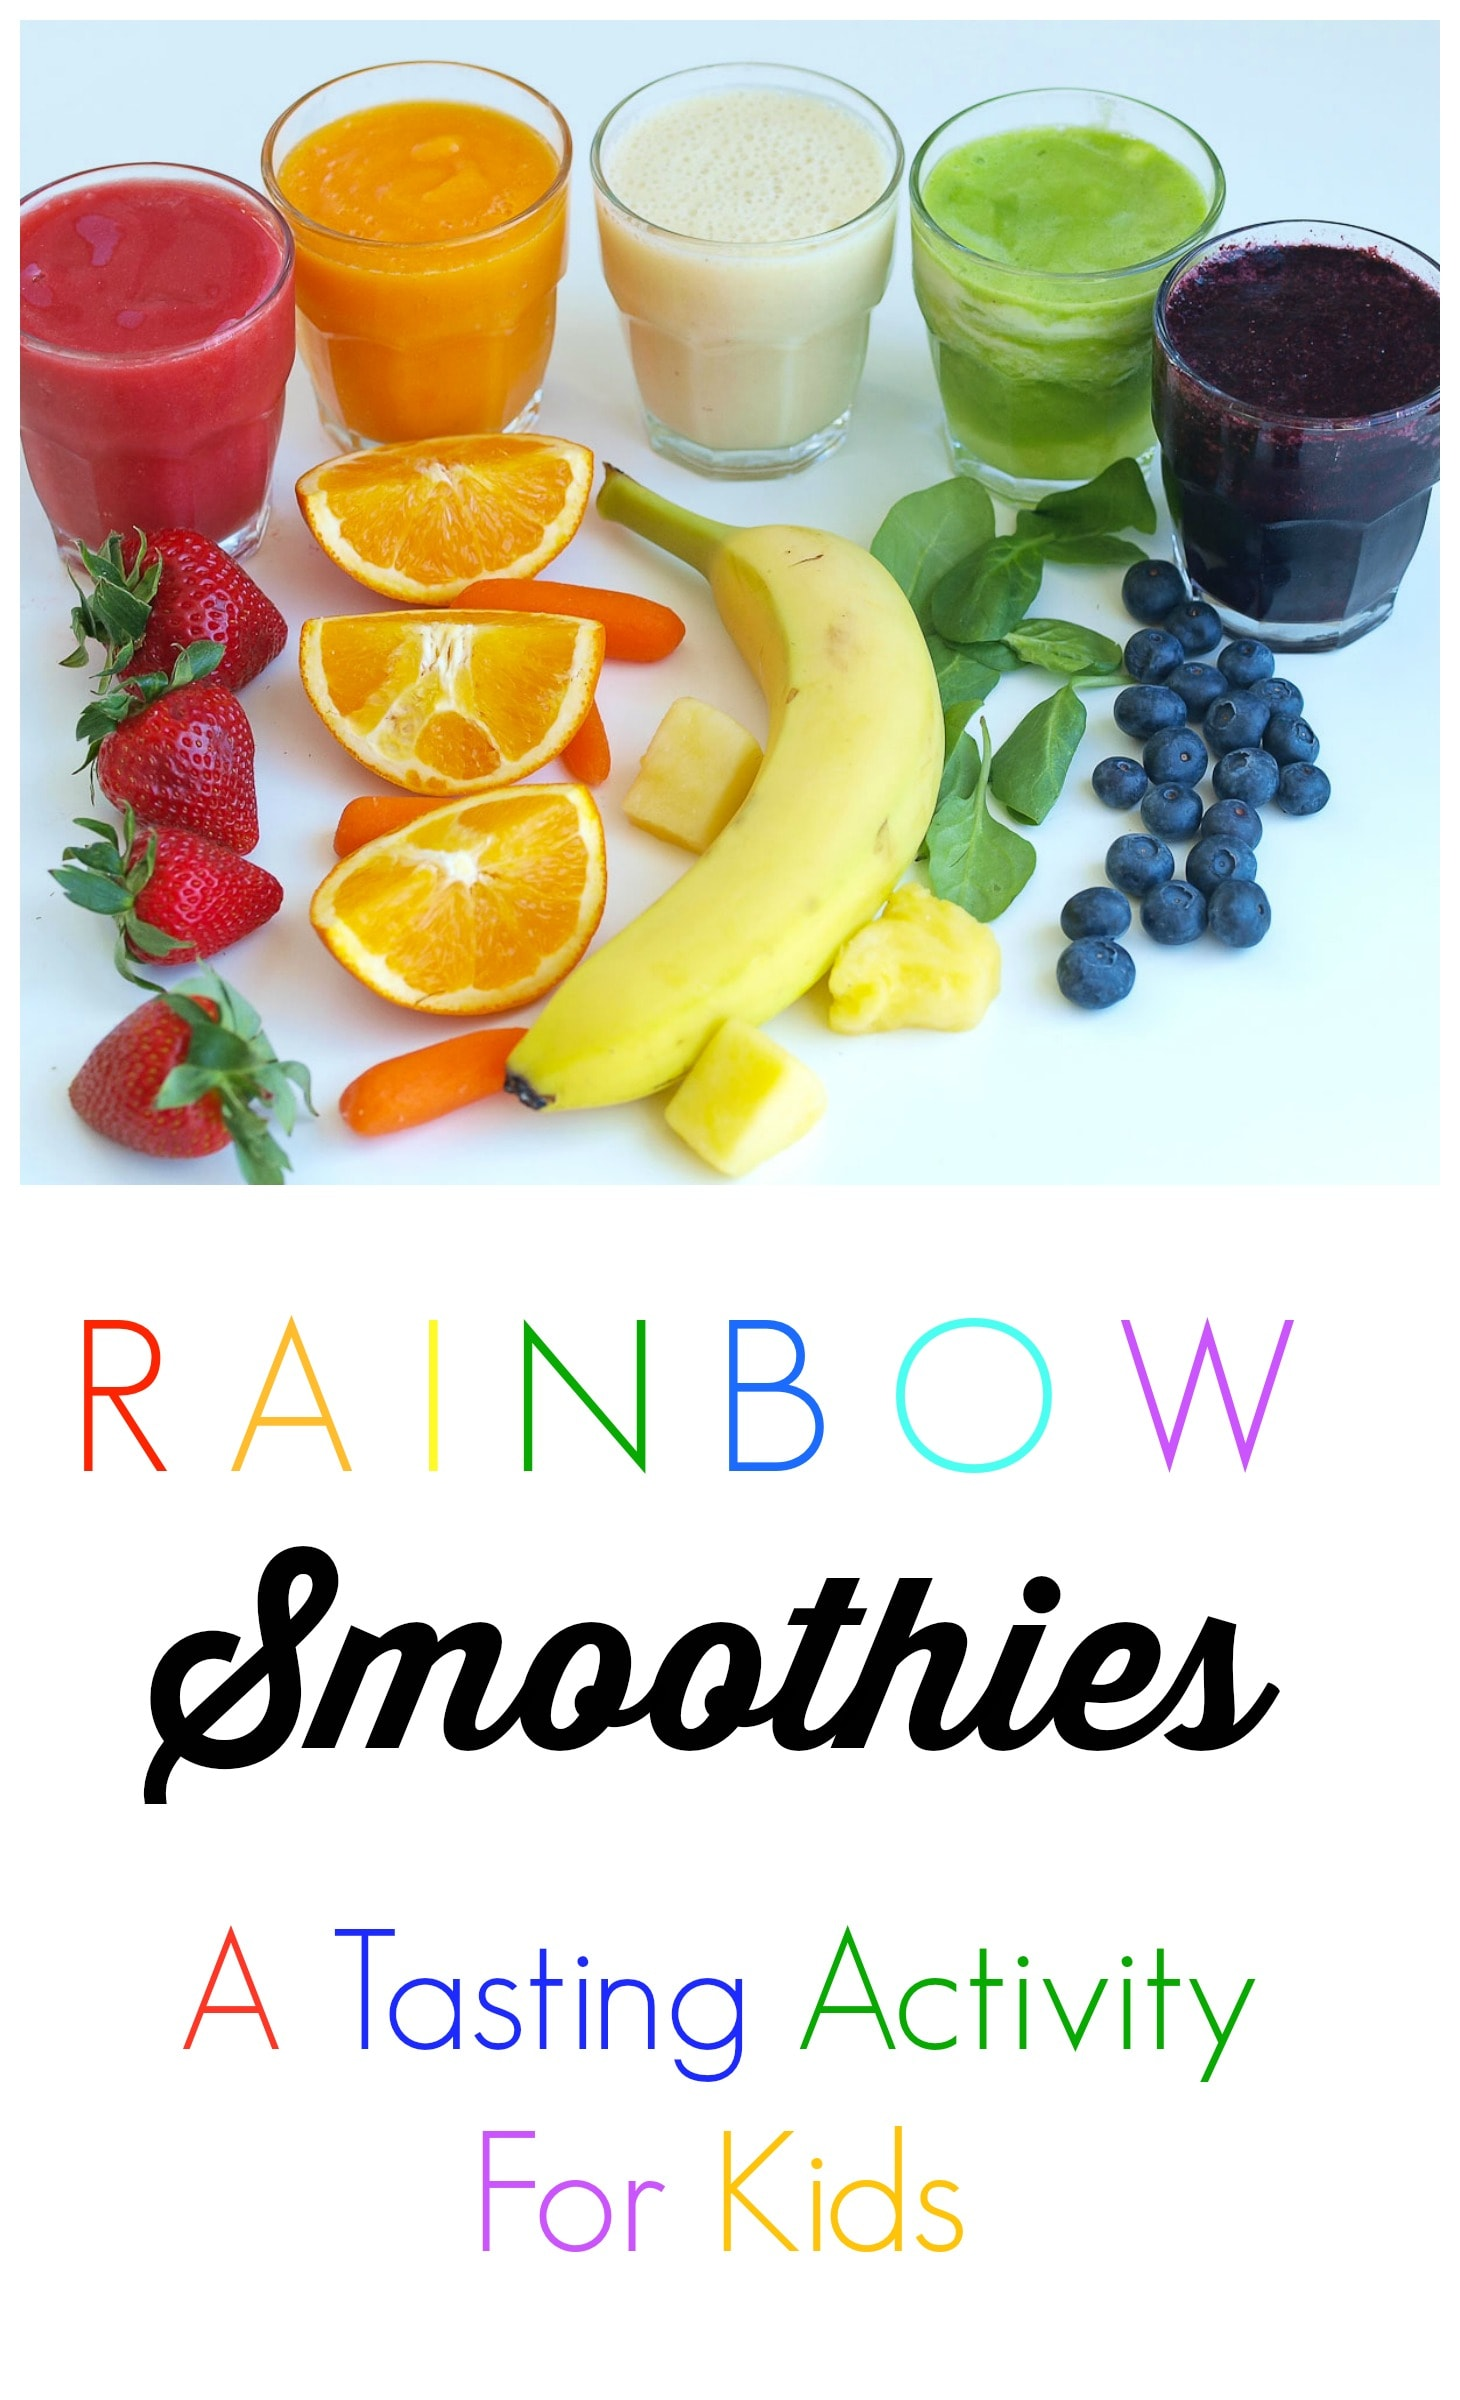 Rainbow Smoothies Teach Your Kids About Eating The With This Fun Tasting Activity